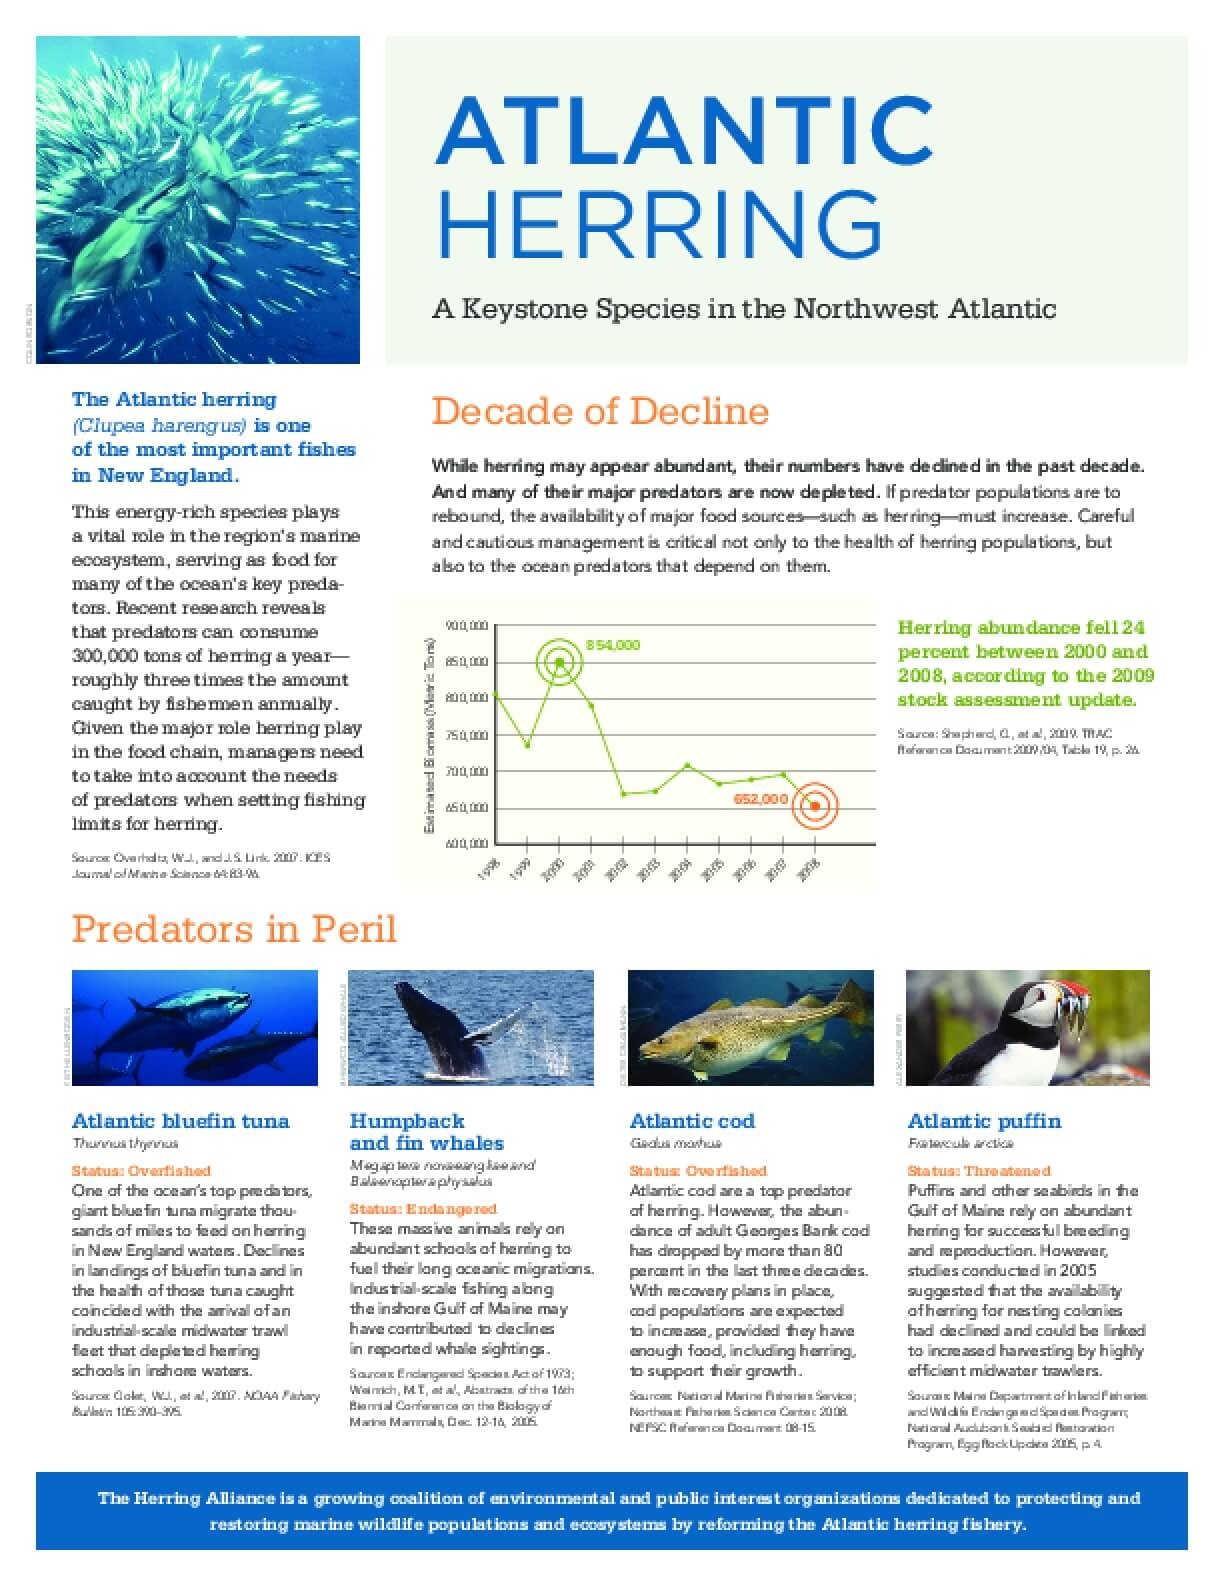 Atlantic Herring - A Keystone Species in the Northwest Atlantic